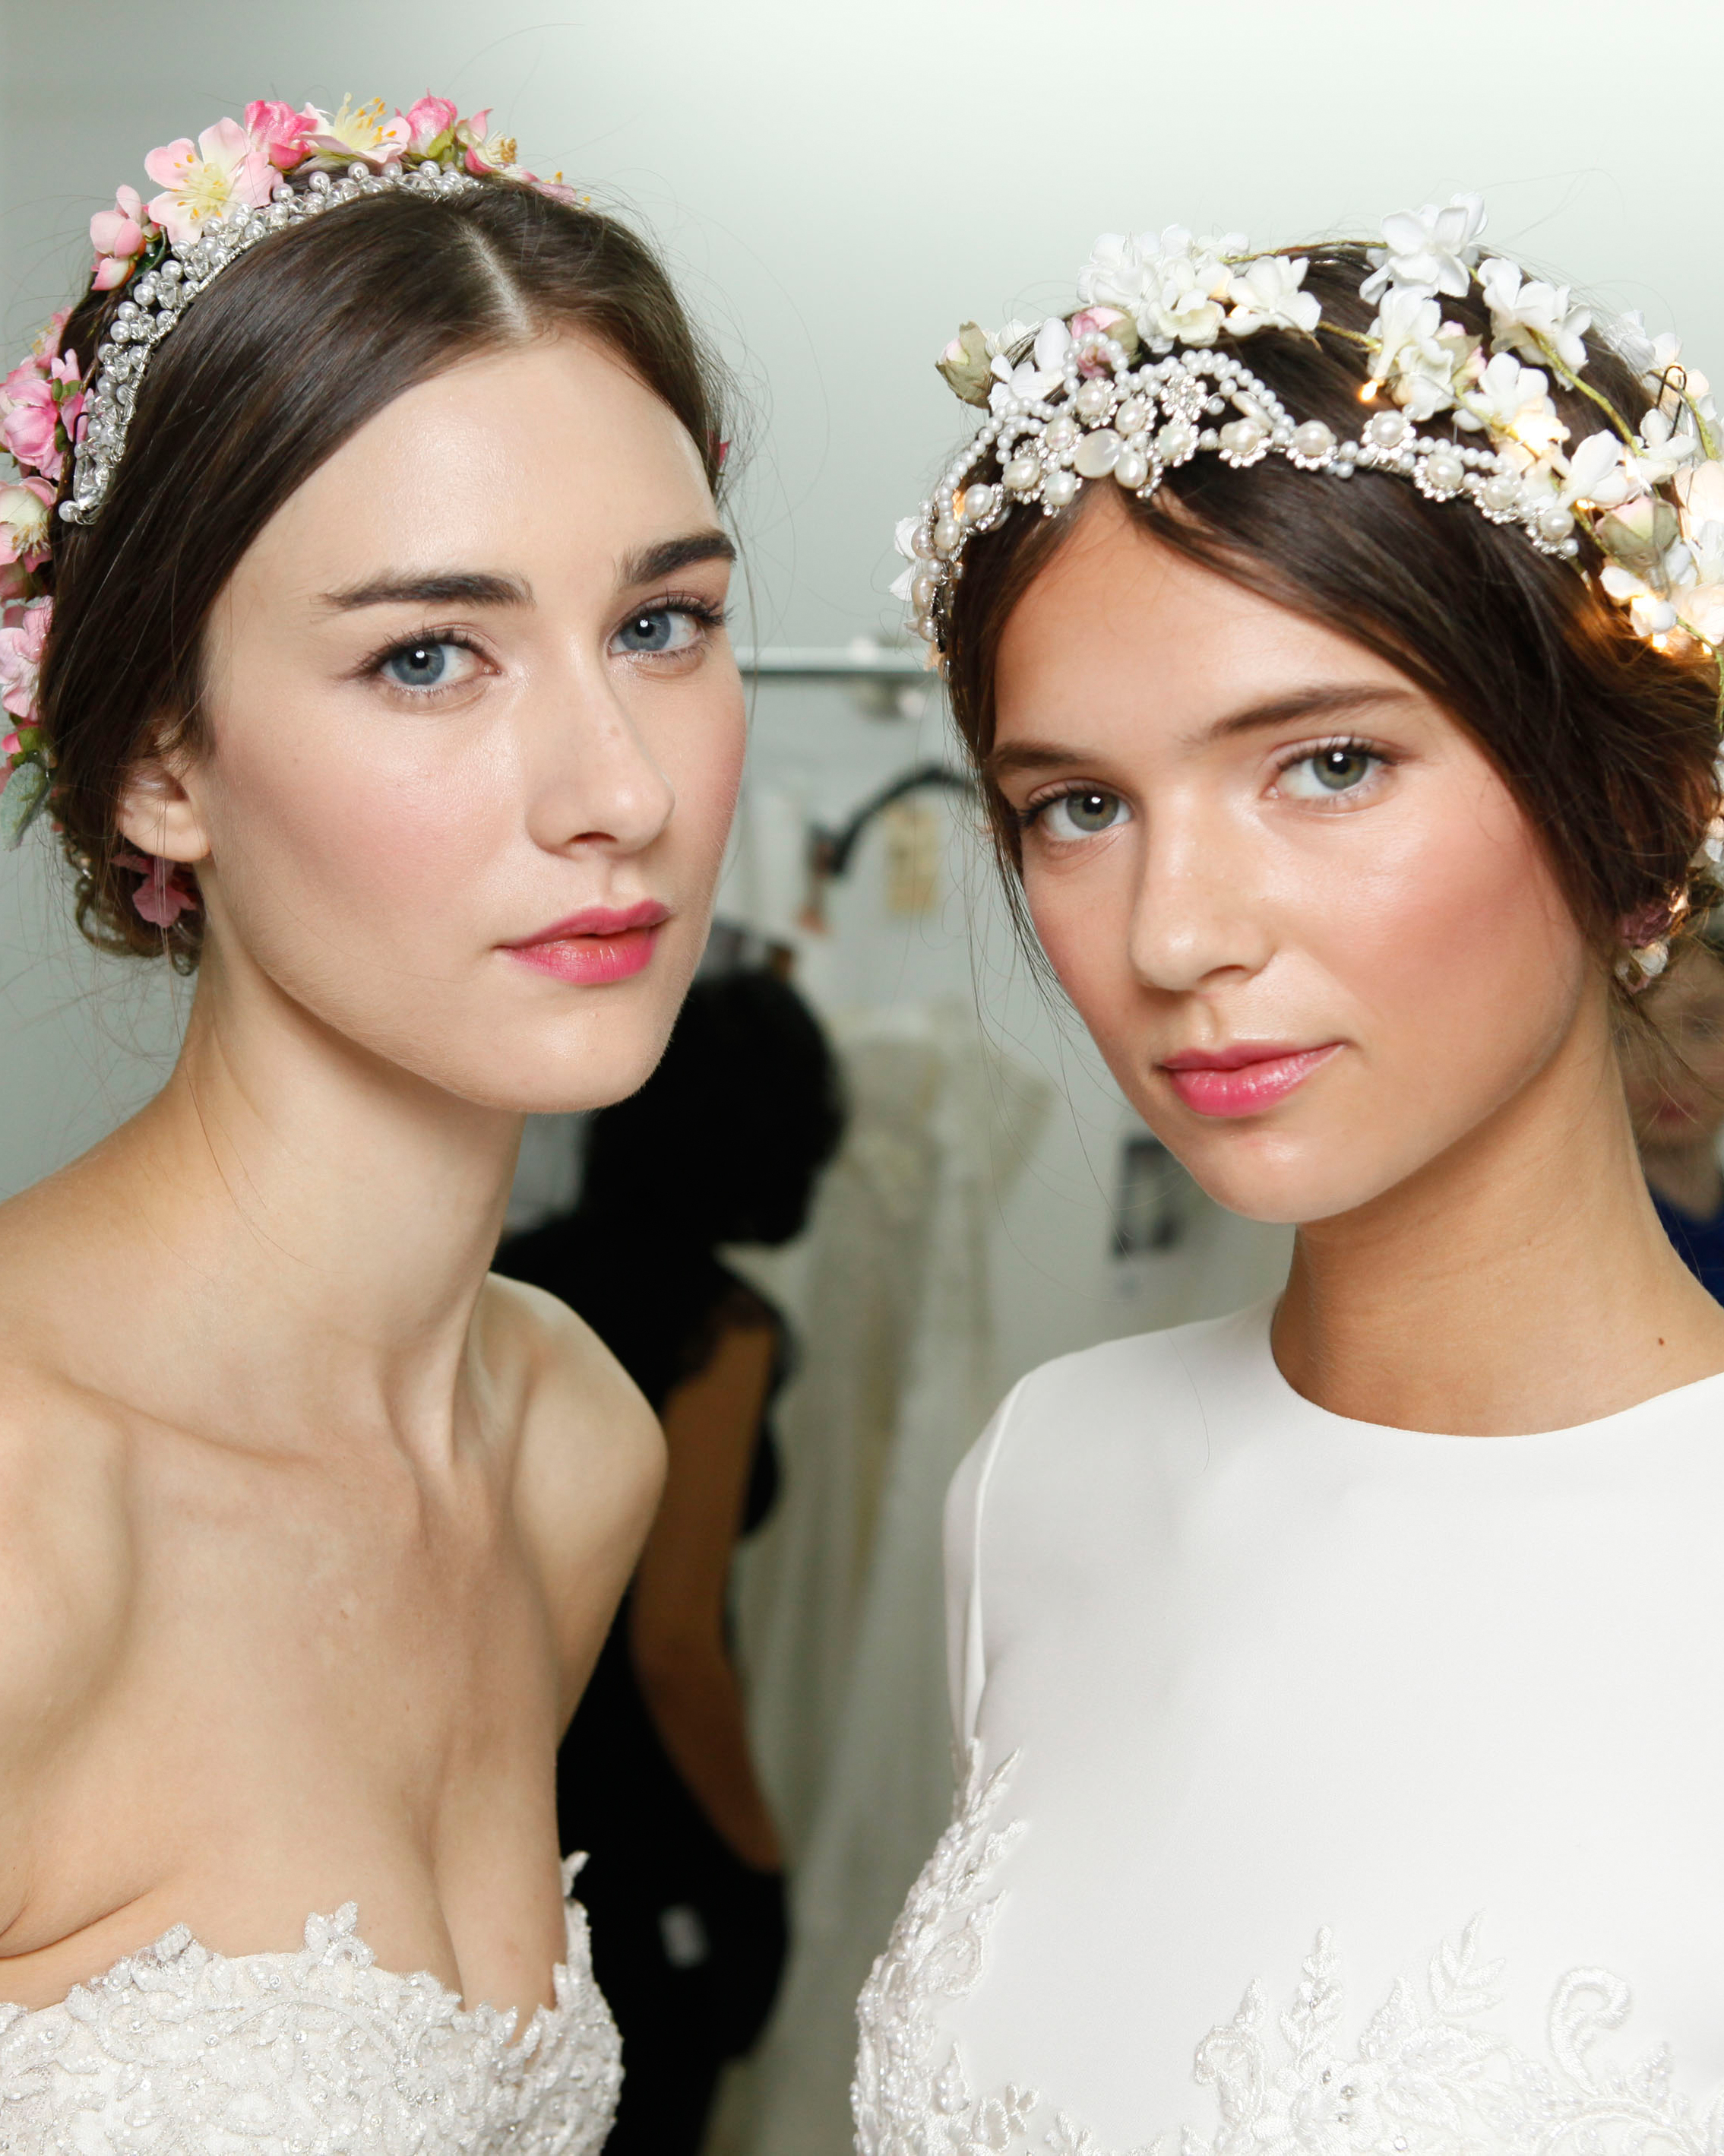 4 Flower-Filled Wedding Hairstyles From the Bridal Shows